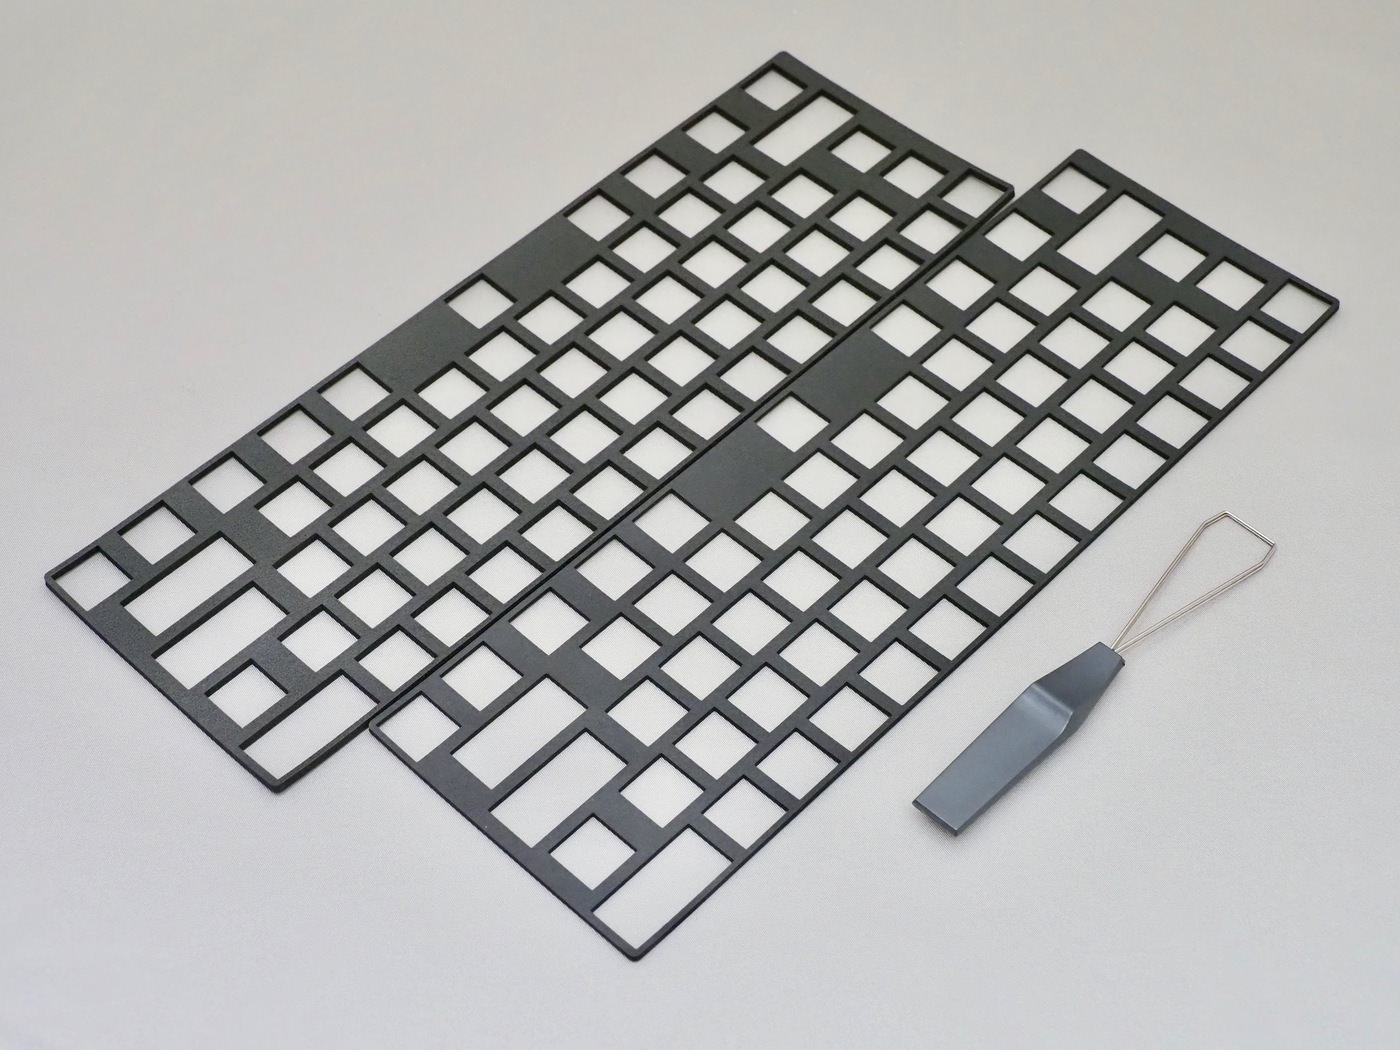 realforce-tkl-for-mac-pfu-limited-edition-review_00034